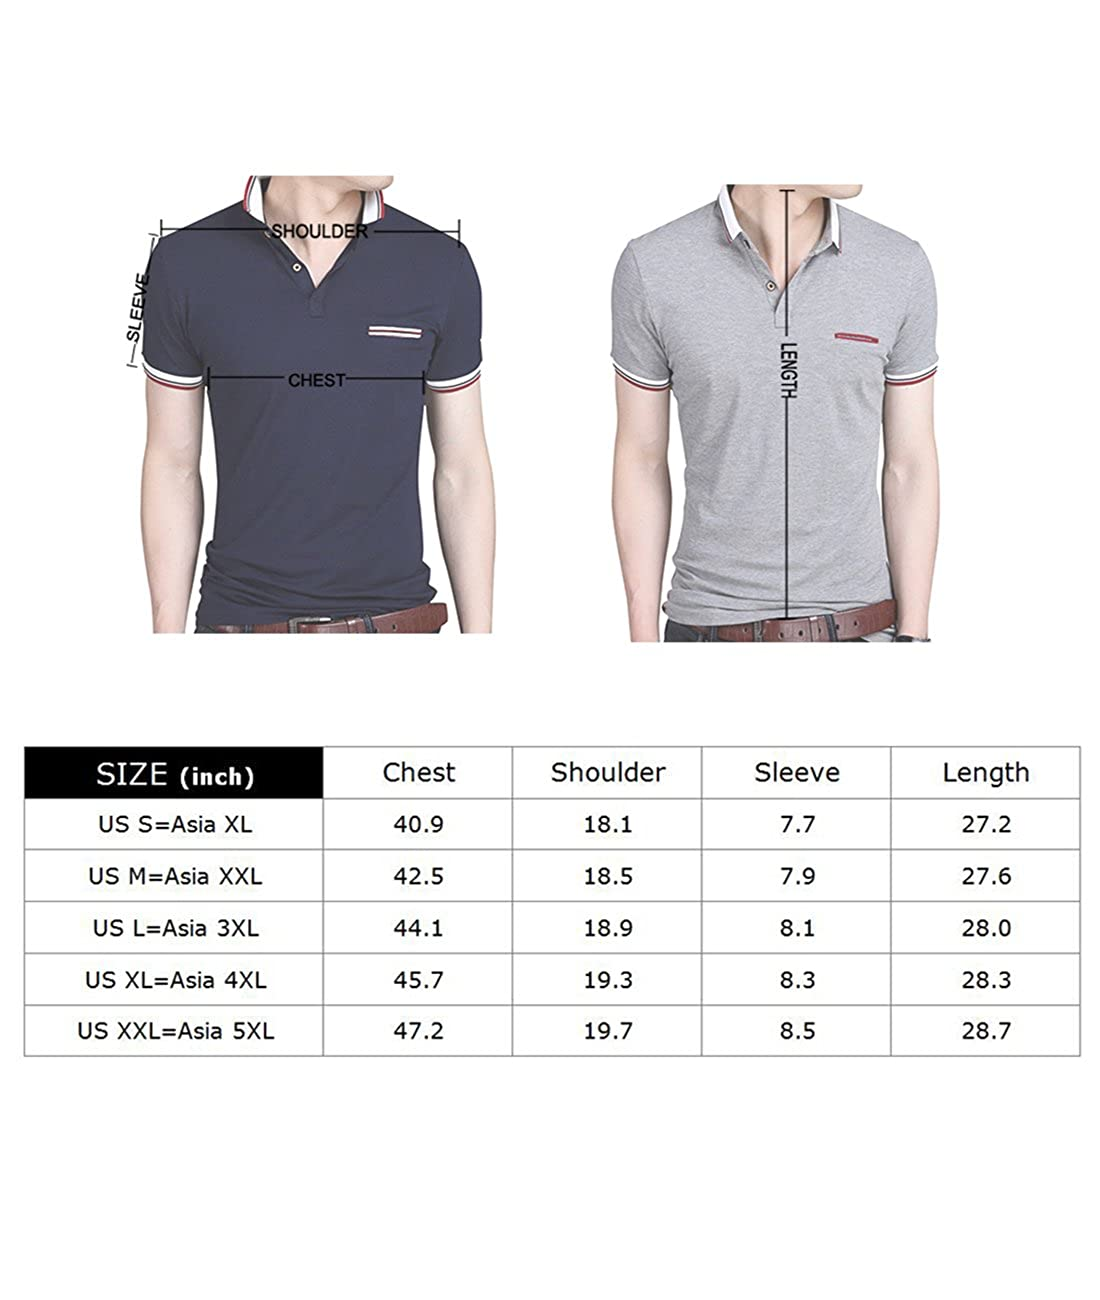 5e64c70dd7f Sanifer Men s Collared Shirt Summer Casual Short Sleeve Slim Fit Polo Shirts  T Shirts at Amazon Men s Clothing store